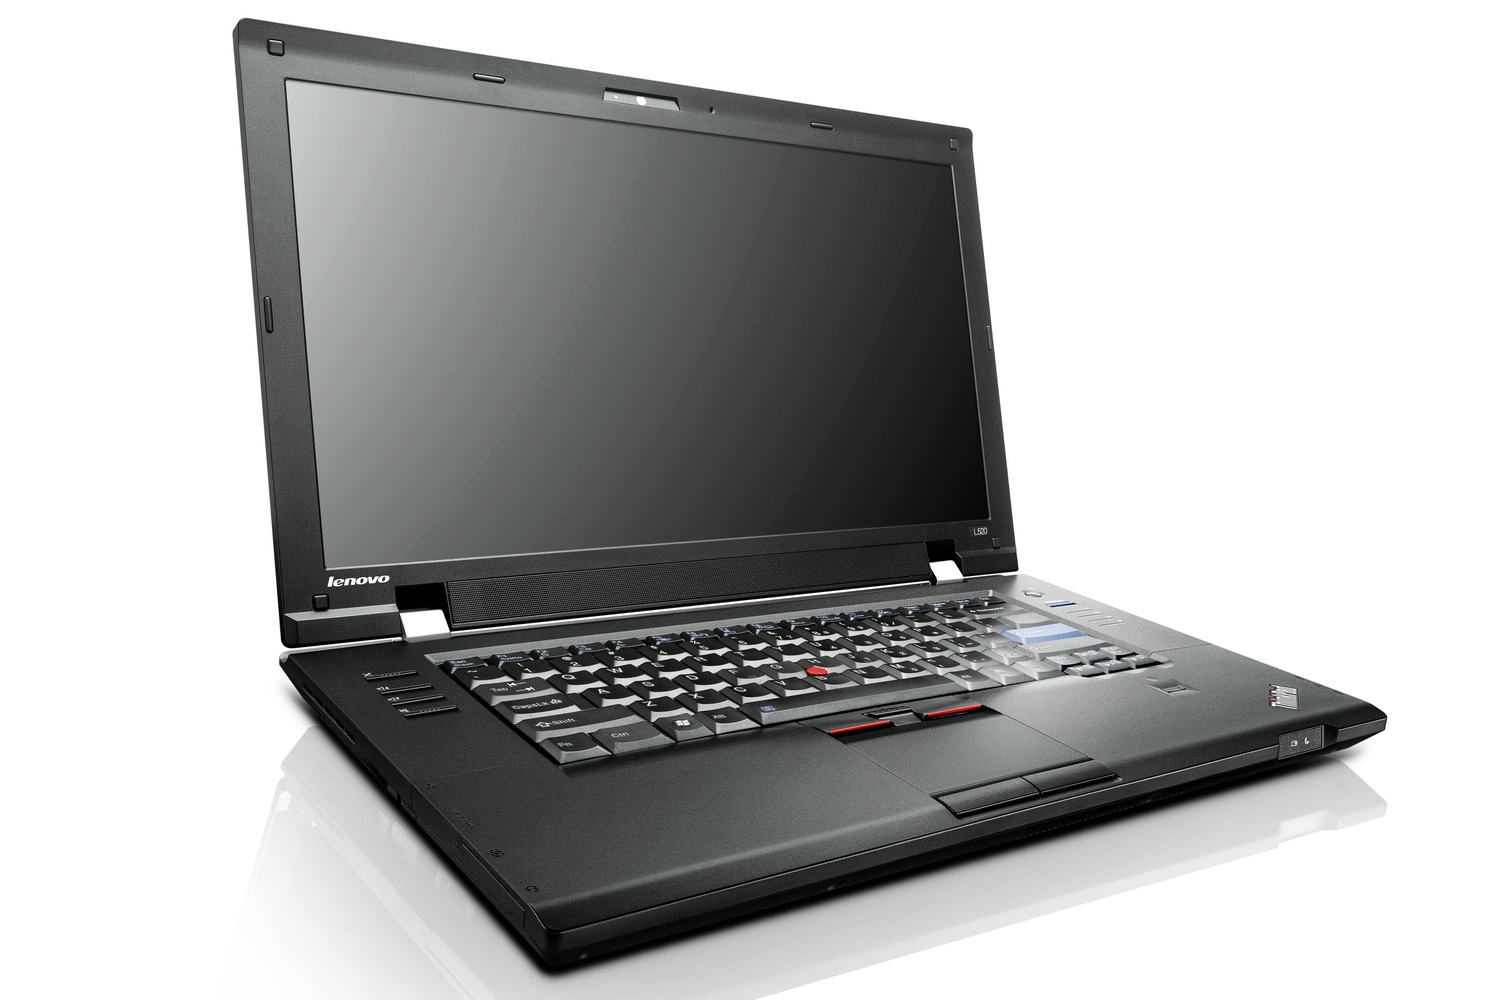 Looking for the business oriented laptops? Go for Lenovo Thinkpads, which are designed with enhanced technology and features to make your business easy.